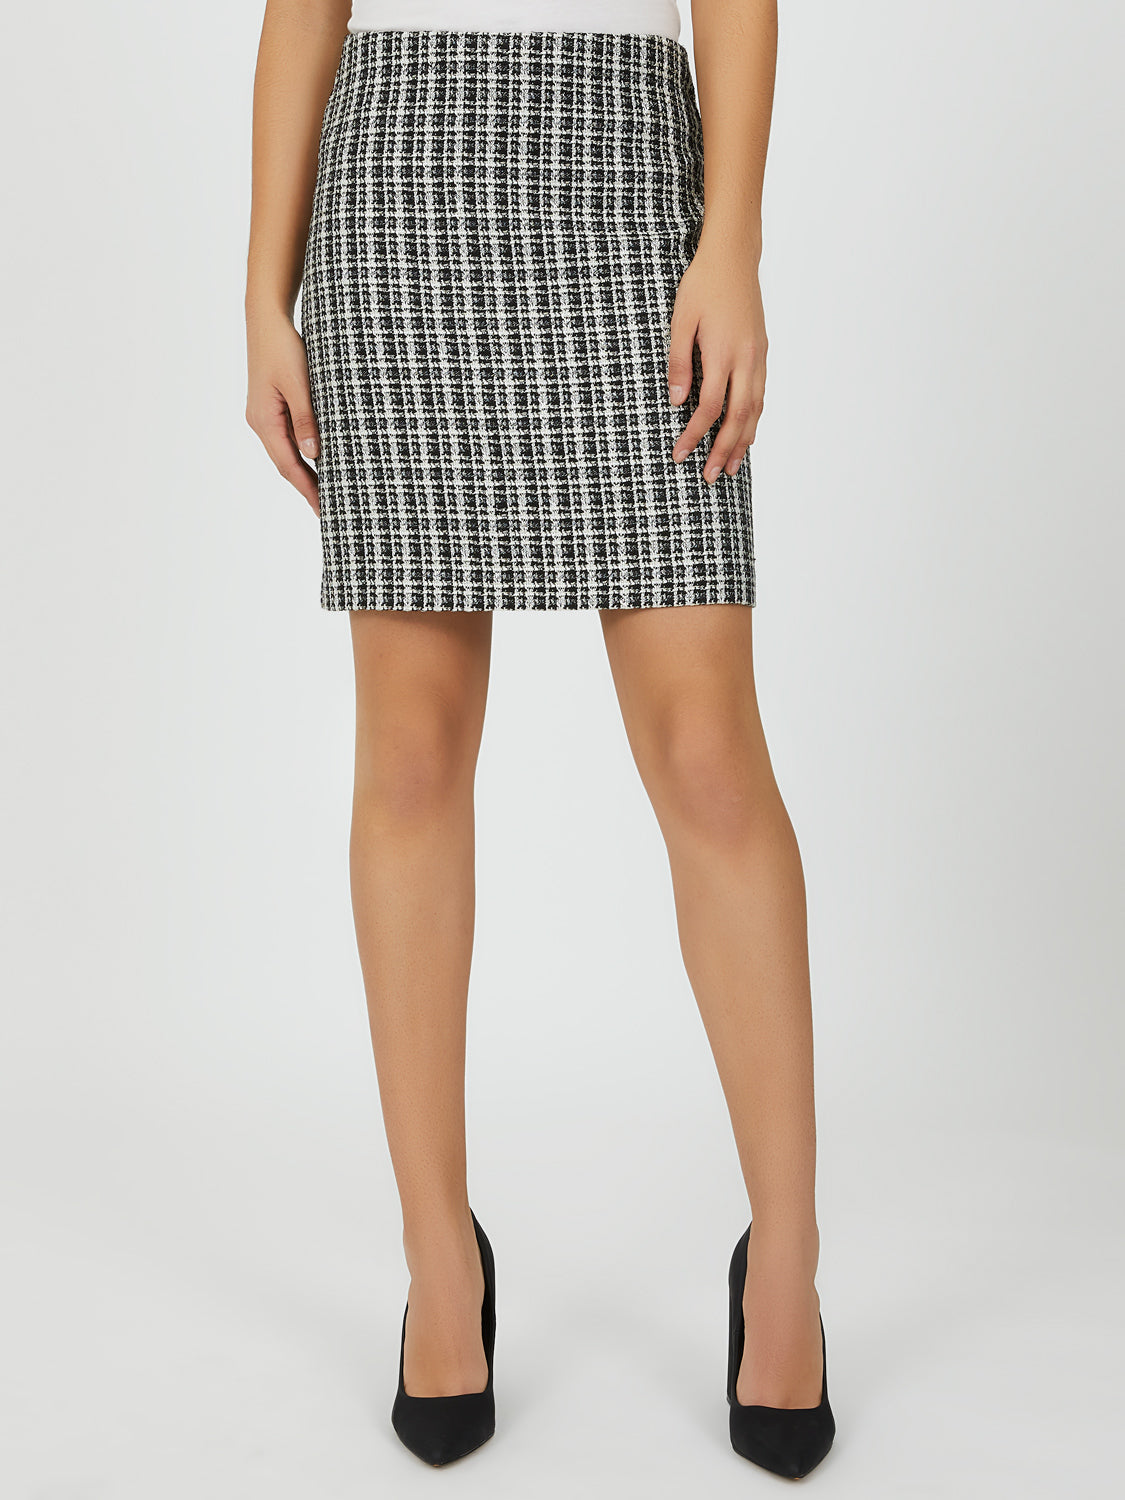 Textured Weave Bouclé Pencil Skirt